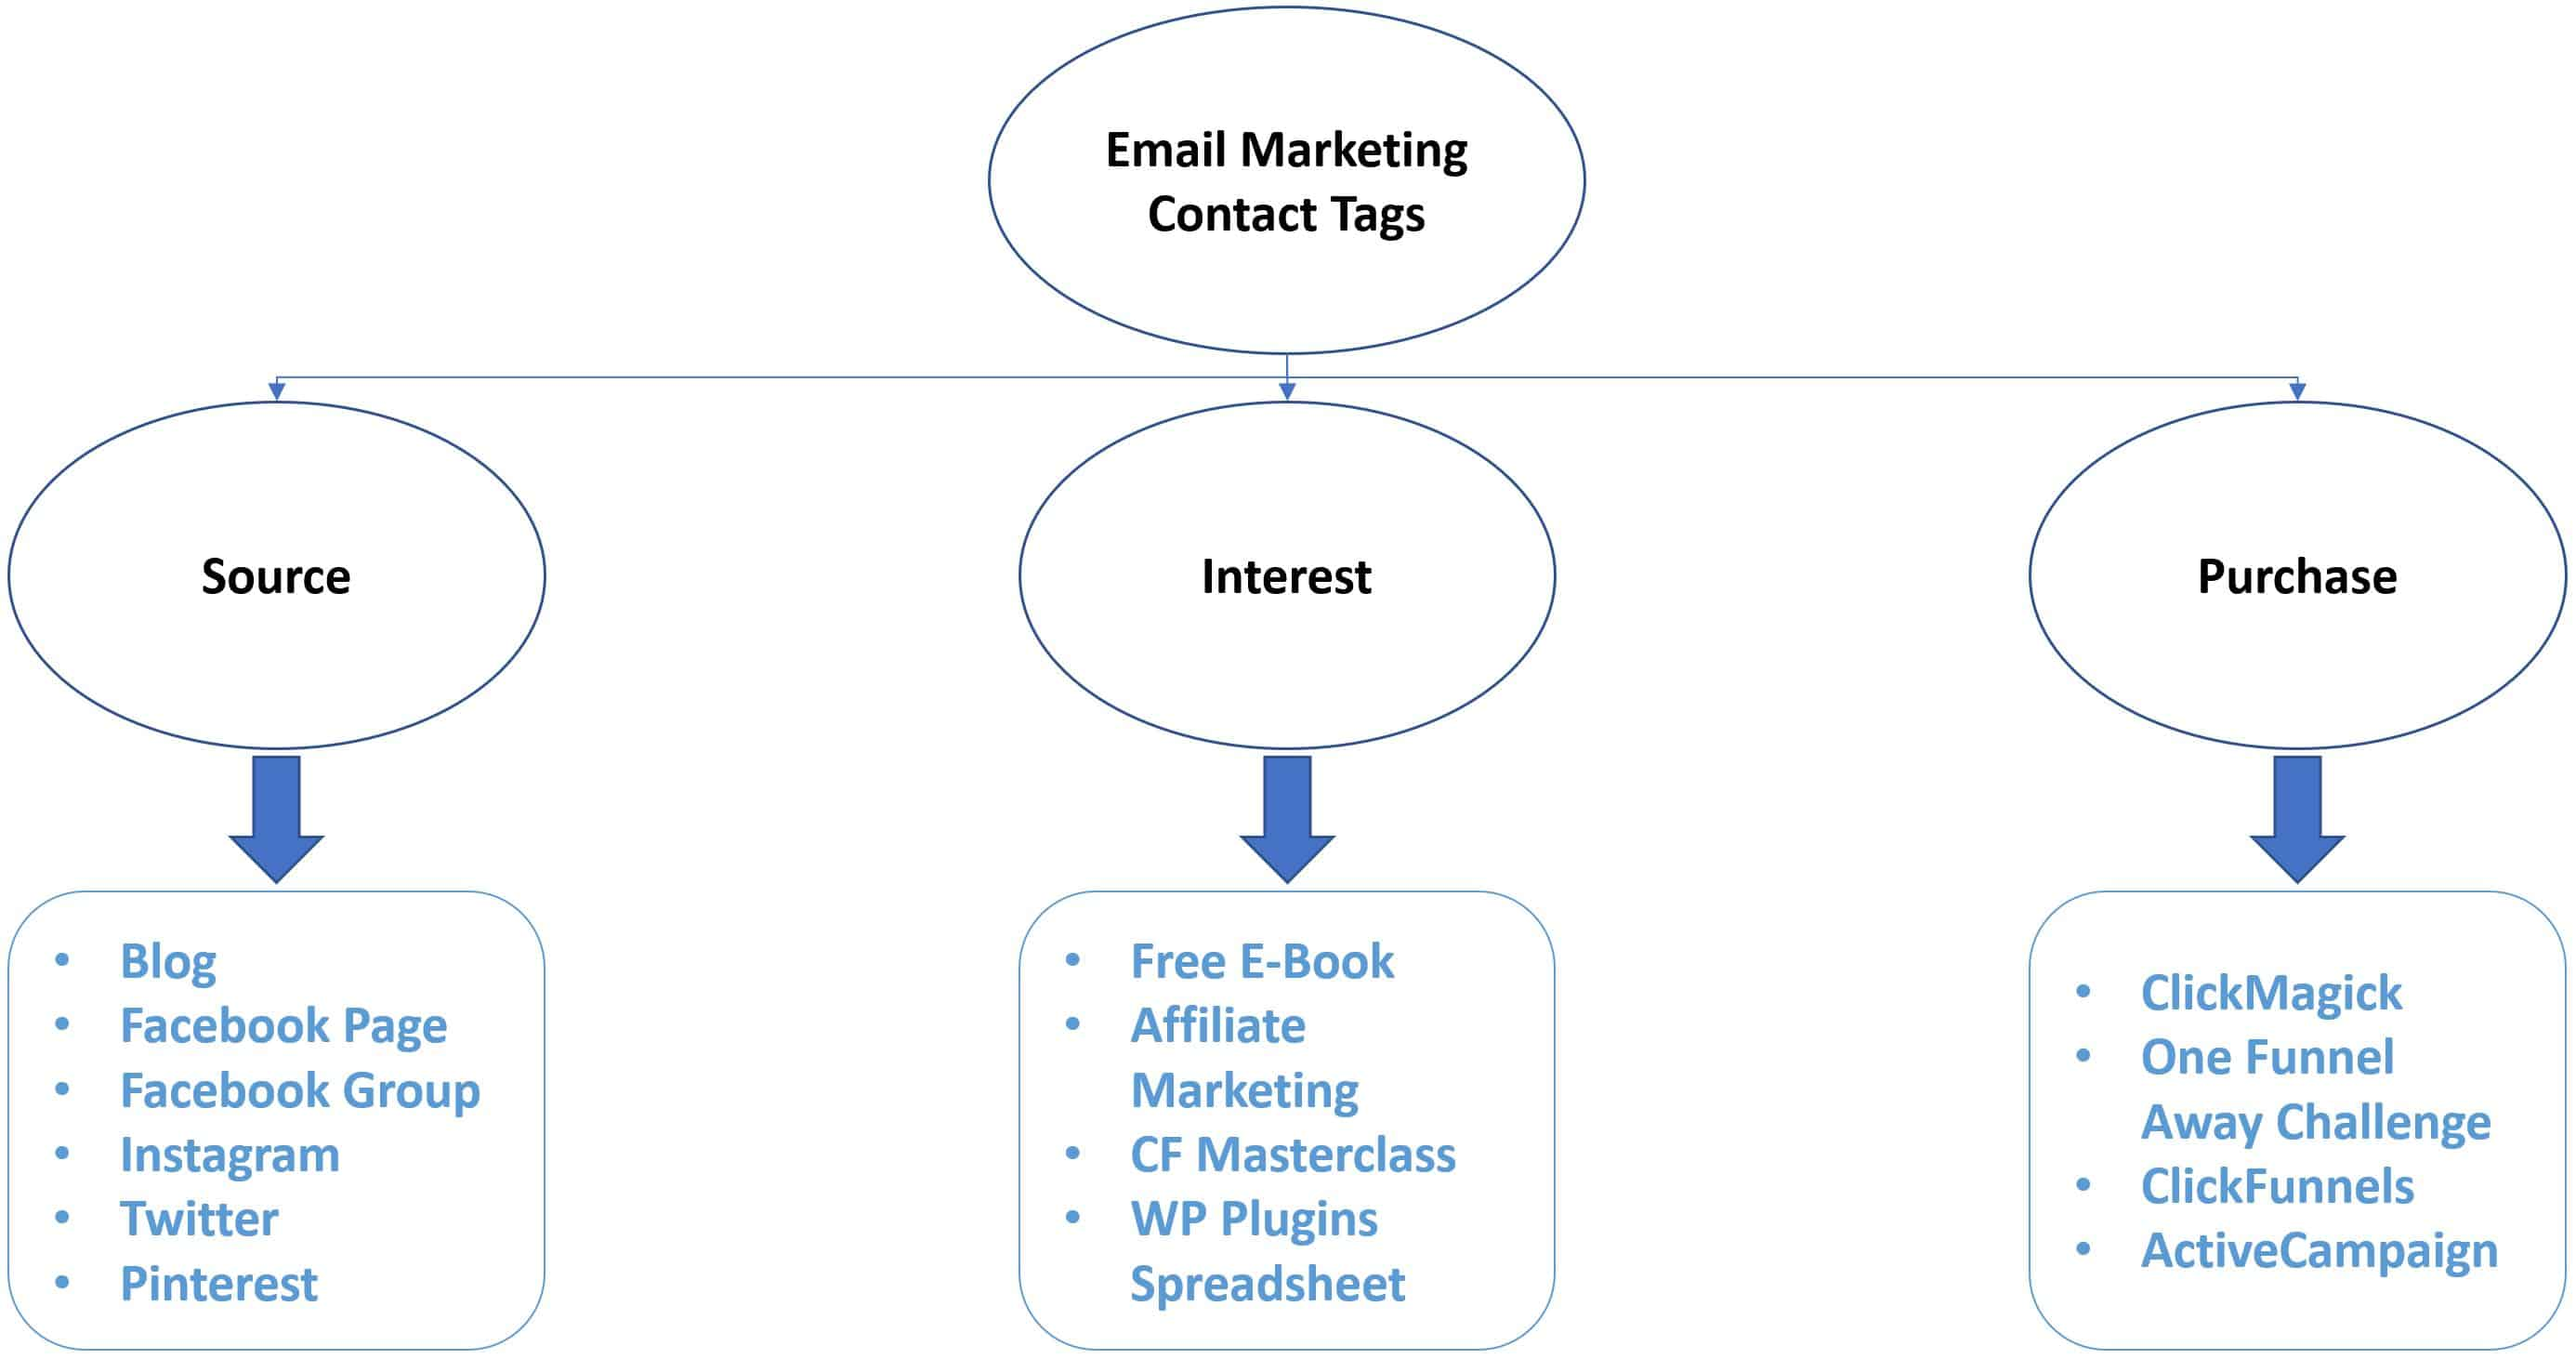 Contact Tags